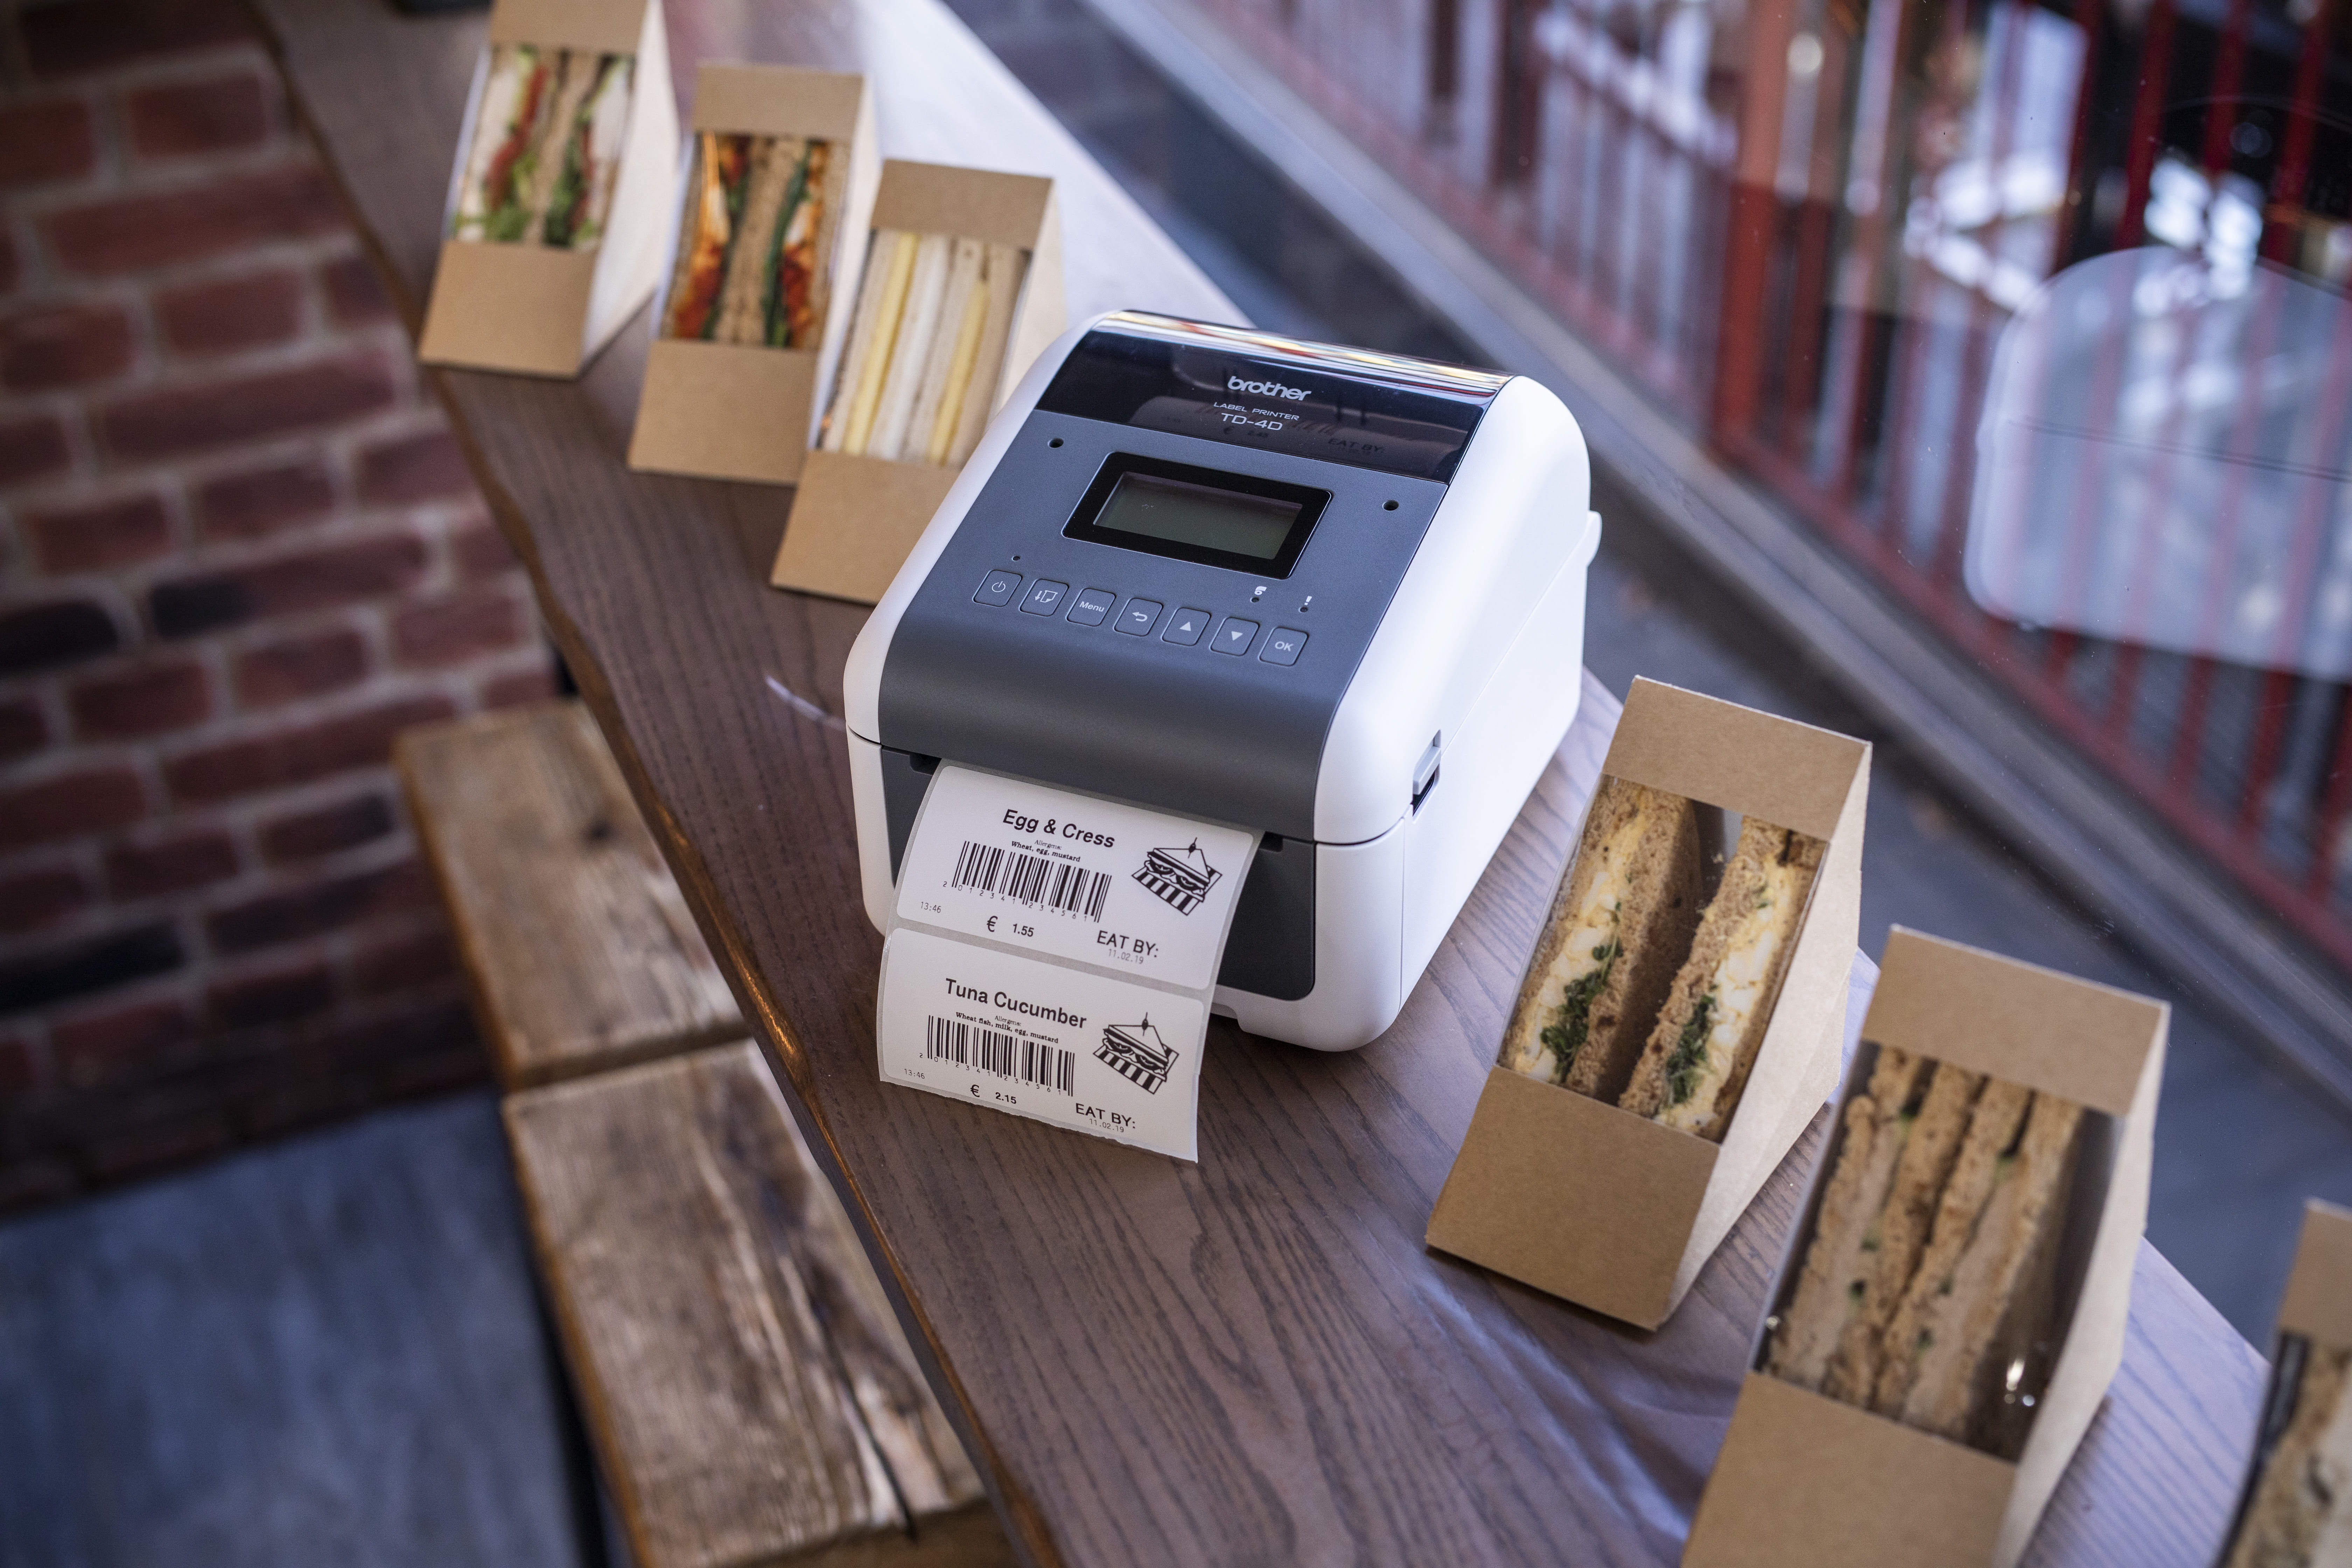 TD-4D labelling machine printing a label to stick on sandwich boxes in a deli retail area